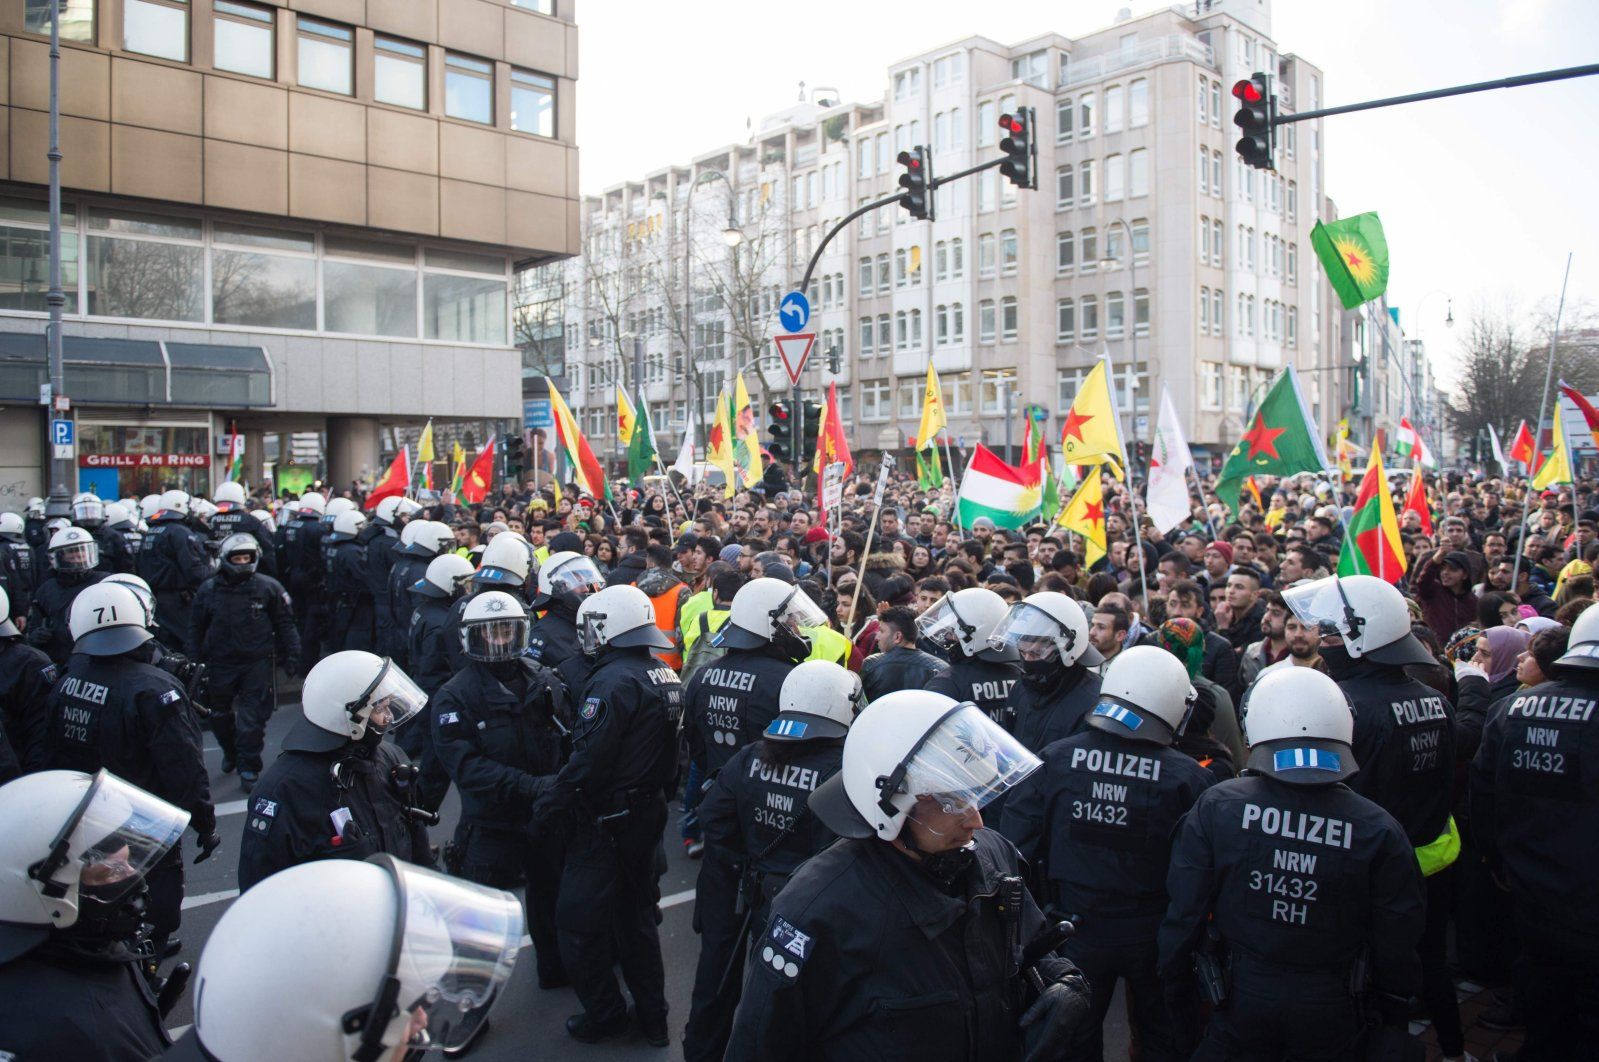 Police officers stop a mass PKK demonstration in Cologne with more than 20,000 participants in Cologne, Jan. 27, 2018.